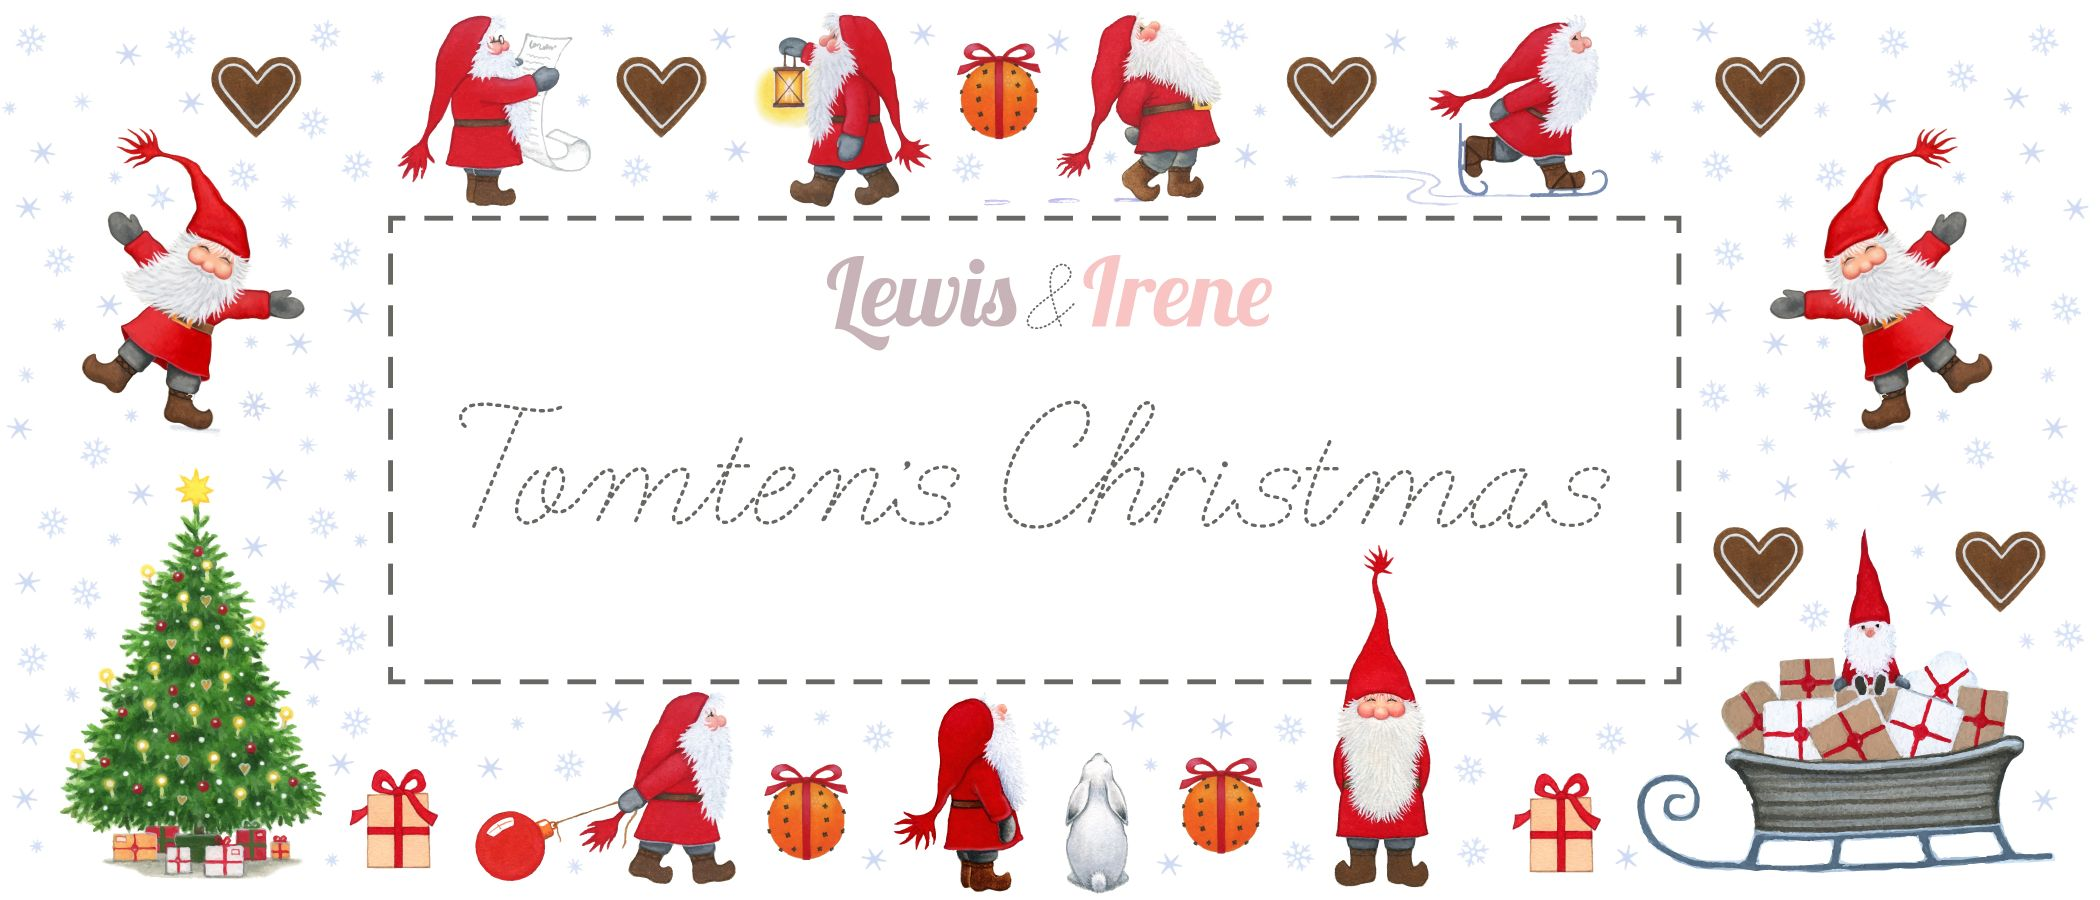 TOMTENSCHRISTMASGraphic-01